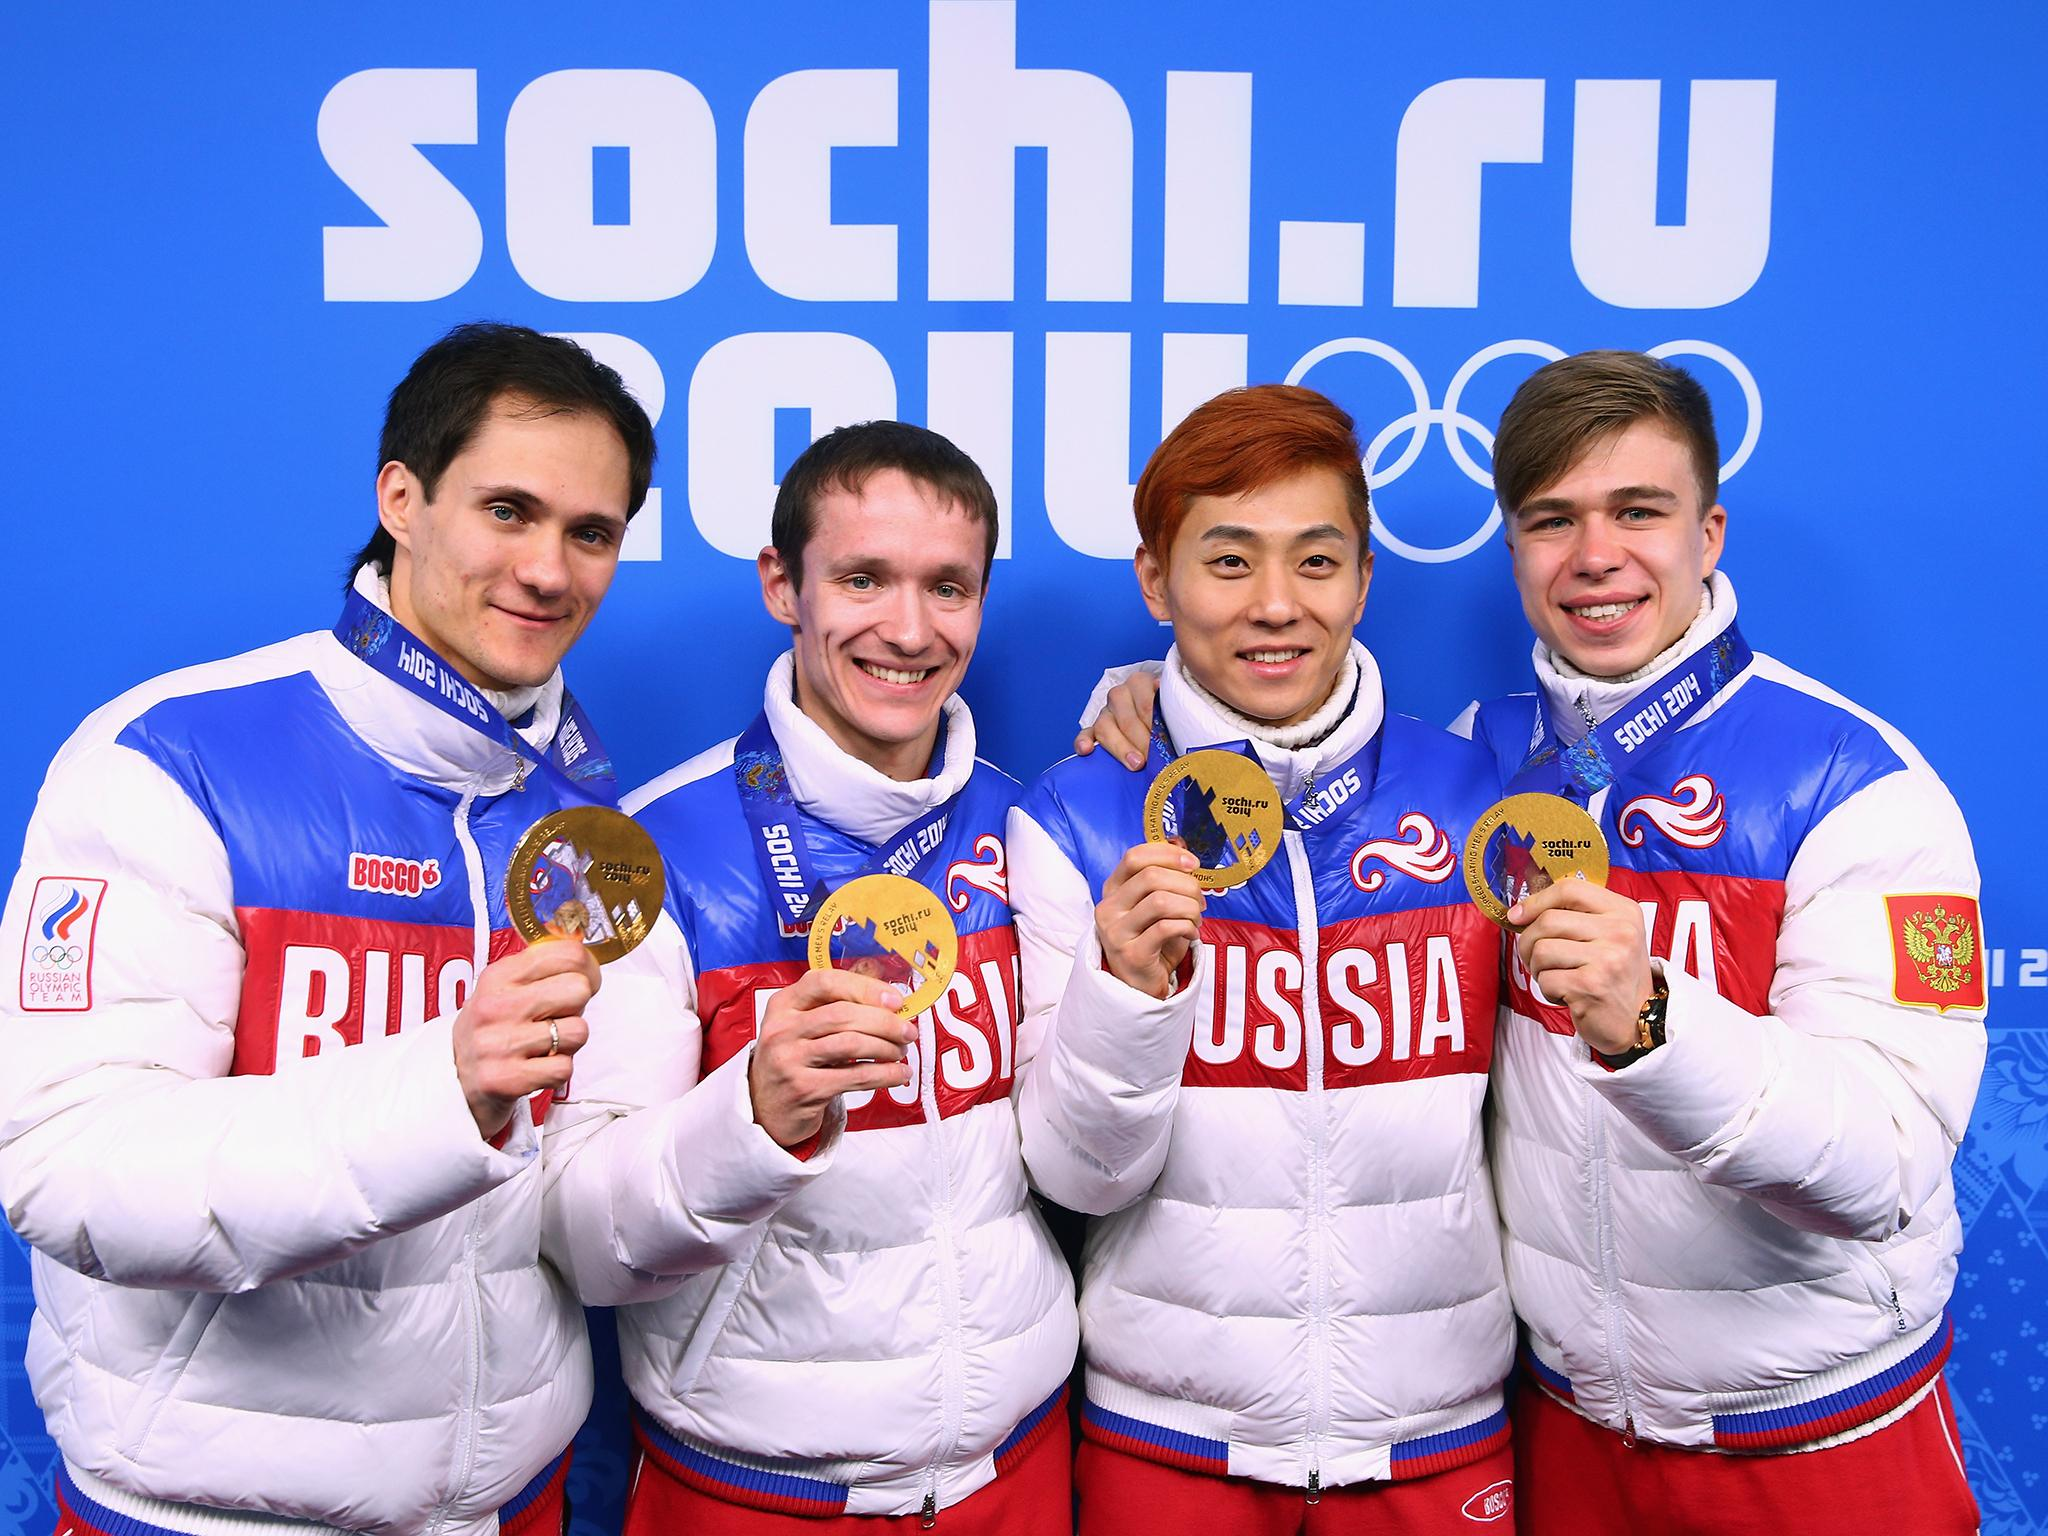 dating olympic athletes 2018 winter olympics how athletes train their minds for the olympics sports psychologists weigh in on the challenges of being among the best in the world.